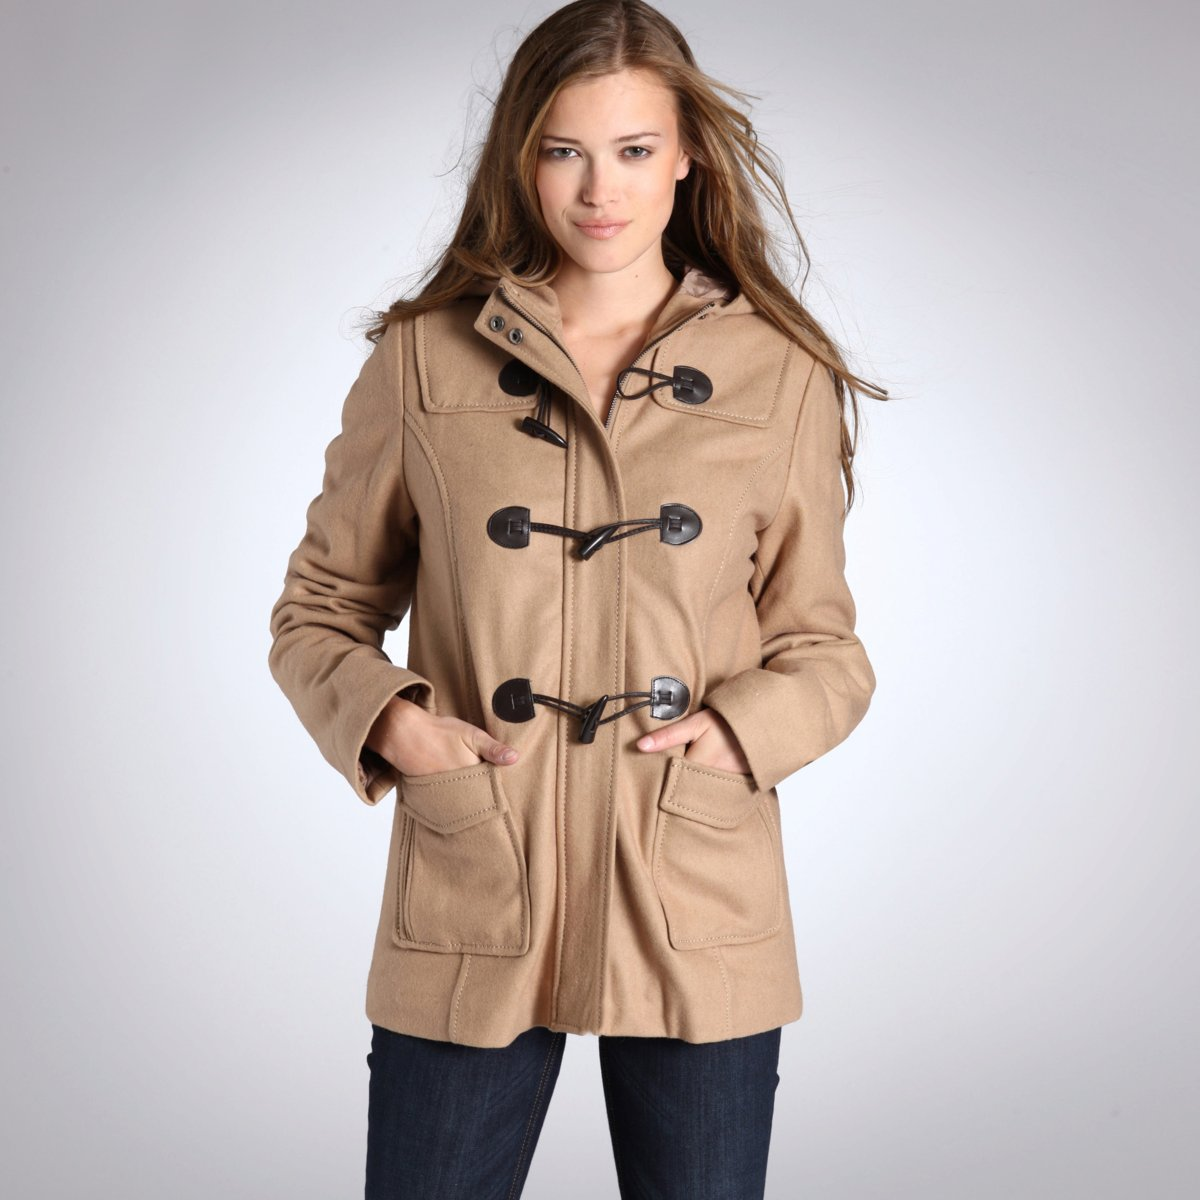 LEDU-2013 new ladies faux Horn button hooded coat GI602